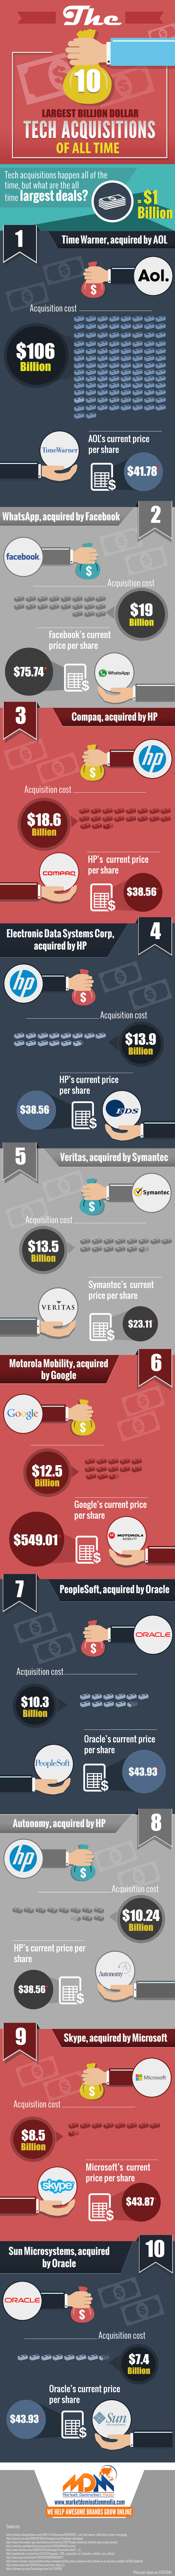 The 10 Largest Billion Dollar Tech Acquisitions of All Time